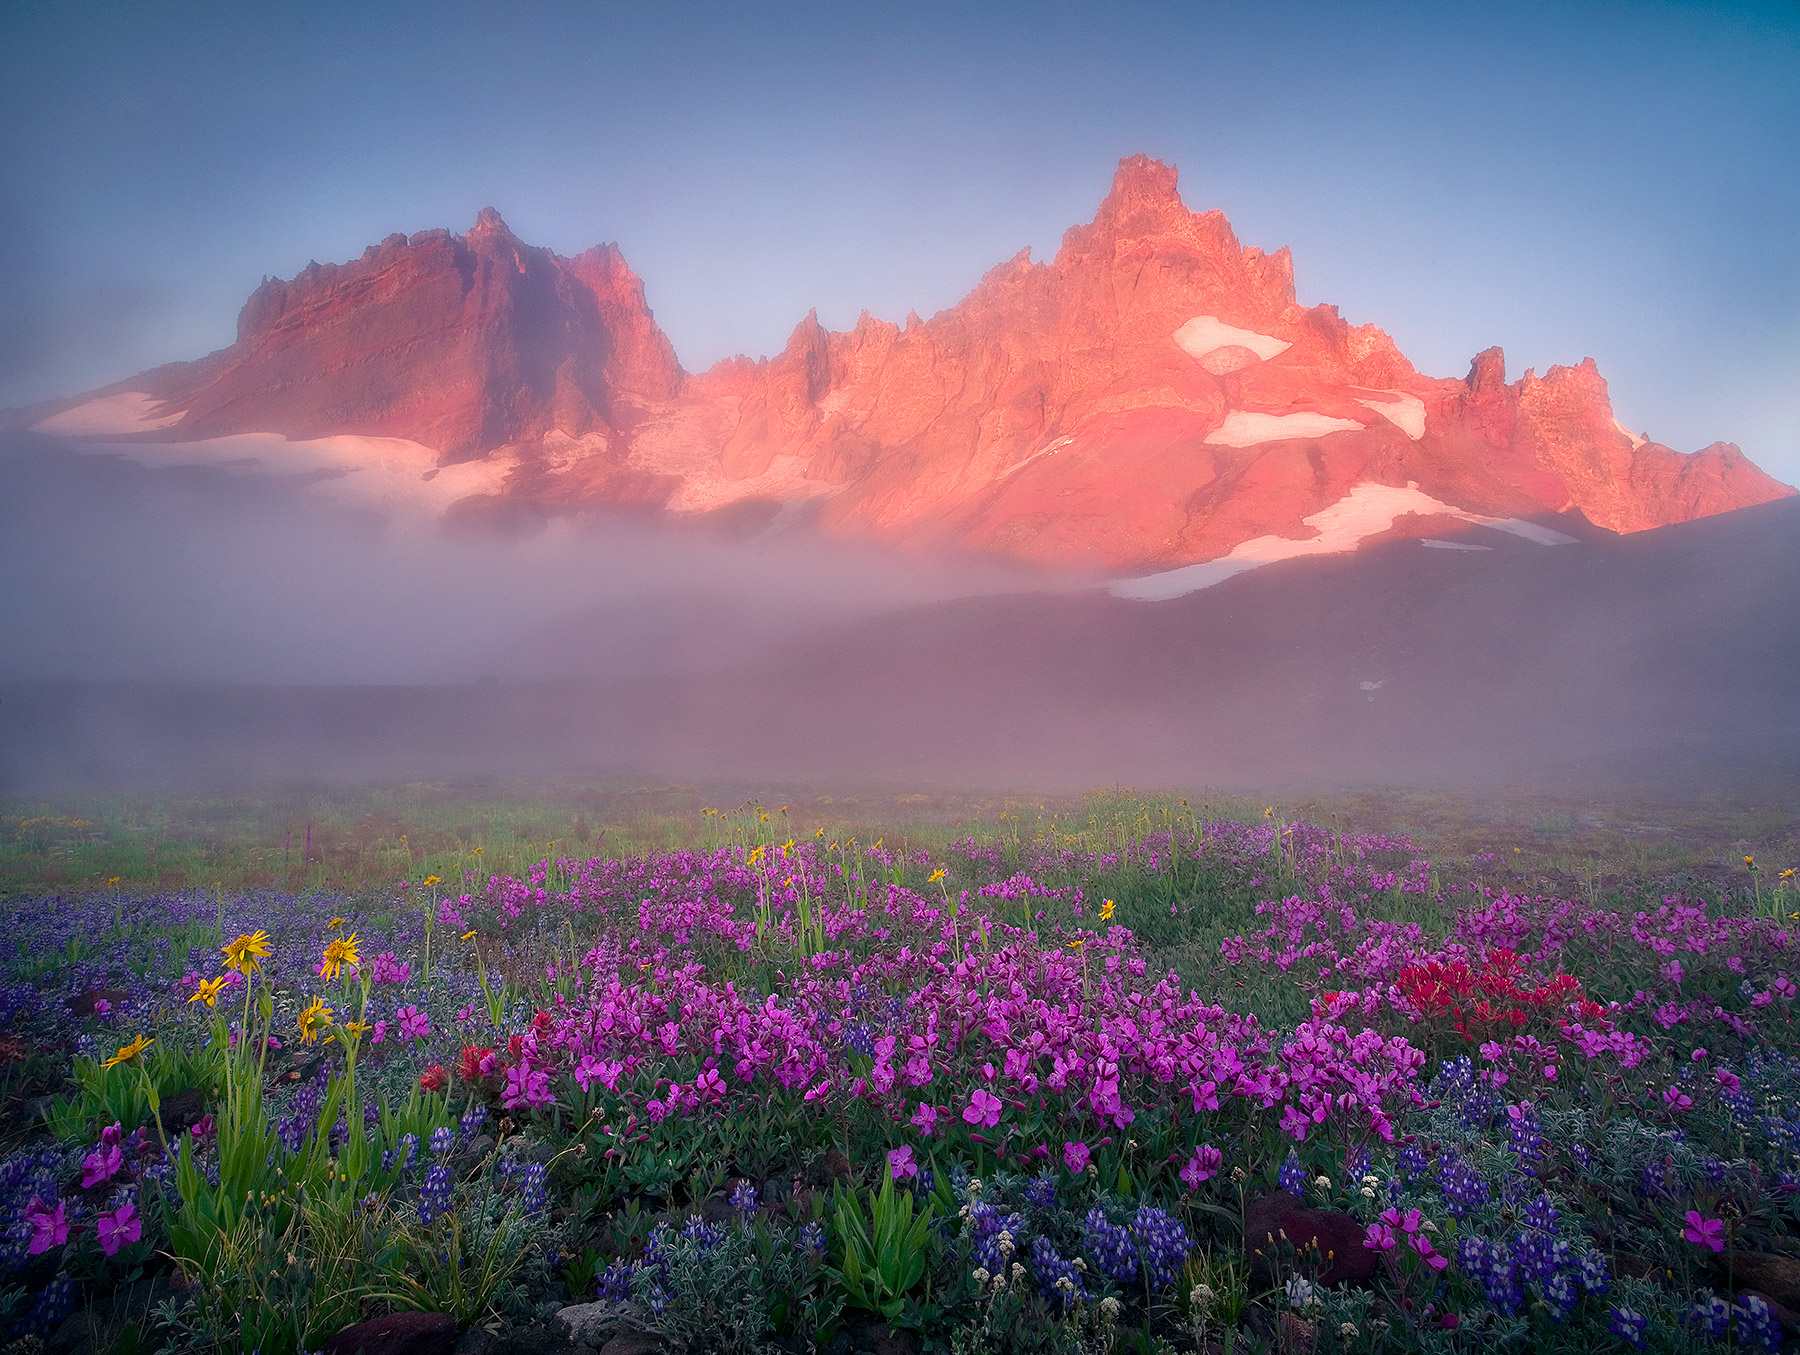 colorful, wildflowers, dramatic, misty, three sisters, sunrise, photo